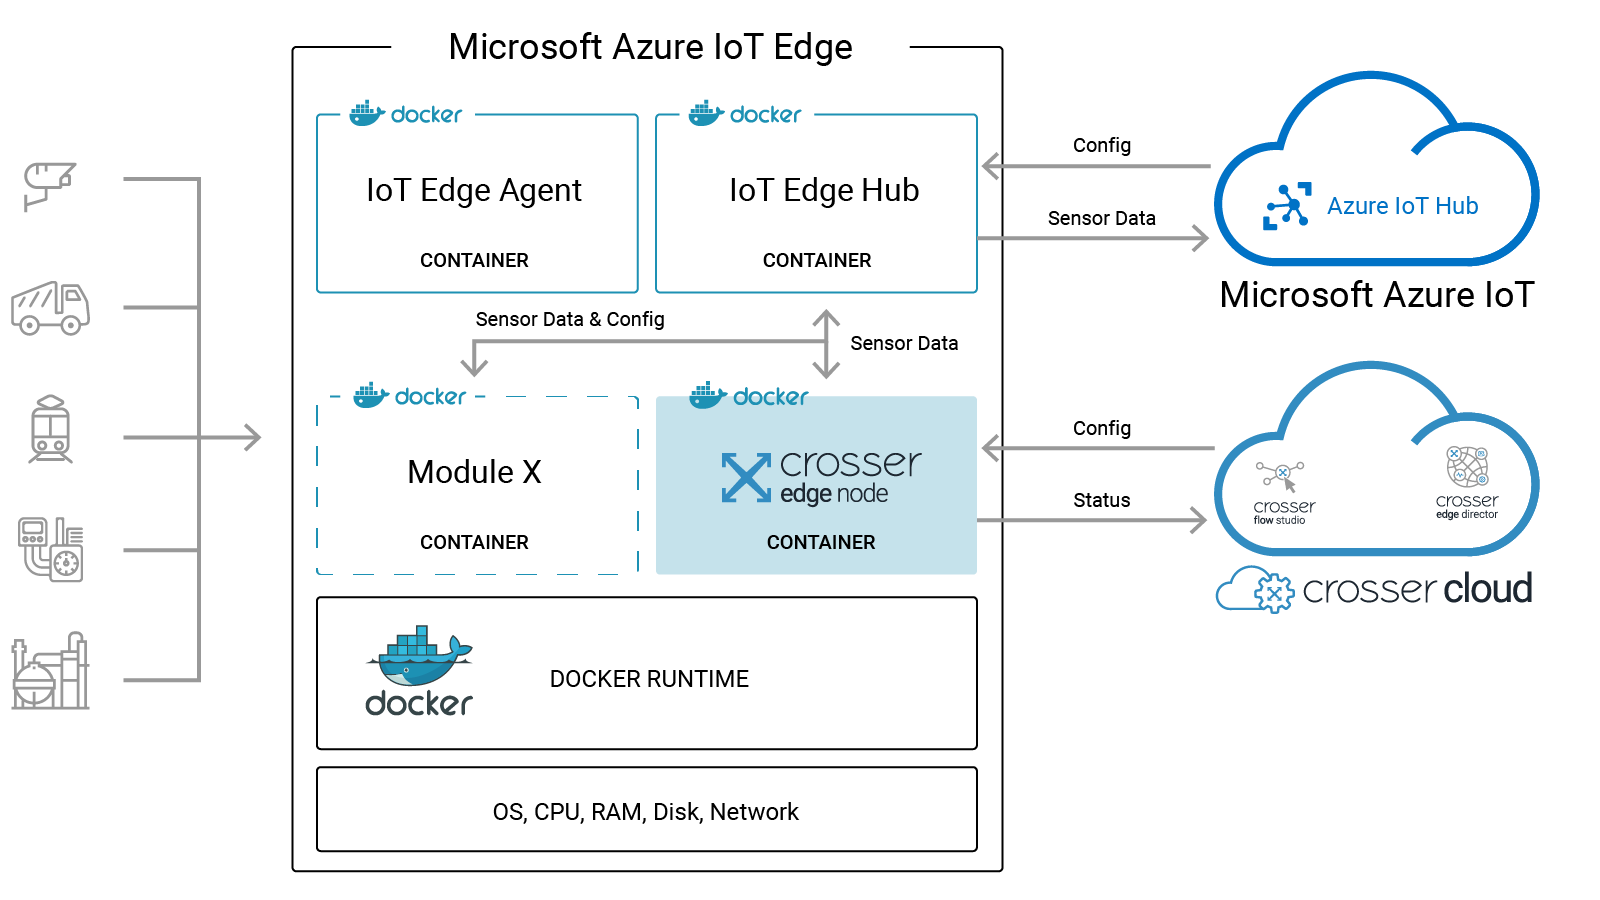 crosser azure edge solution